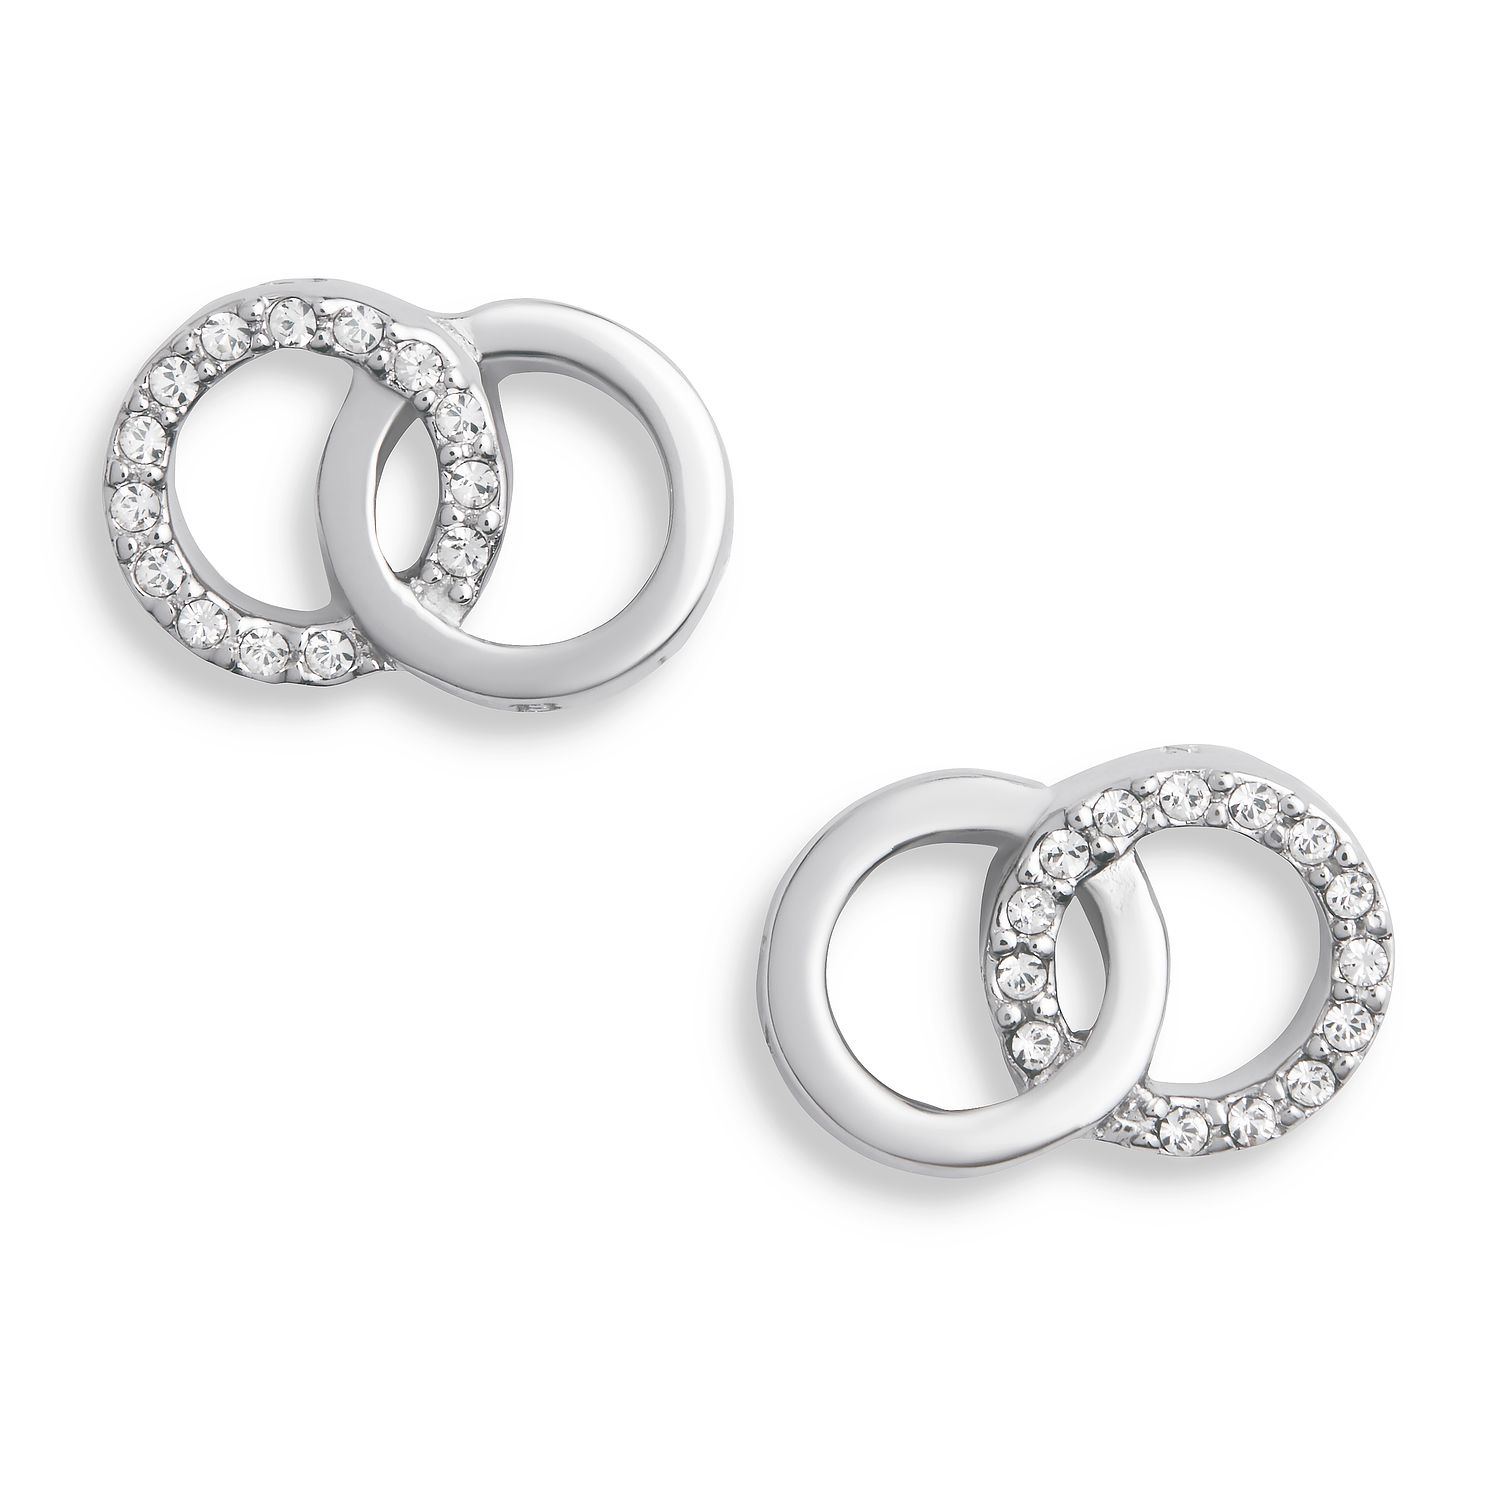 Olivia Burton Bejewelled Interlink Silver Stud Earrings - Product number 5247330